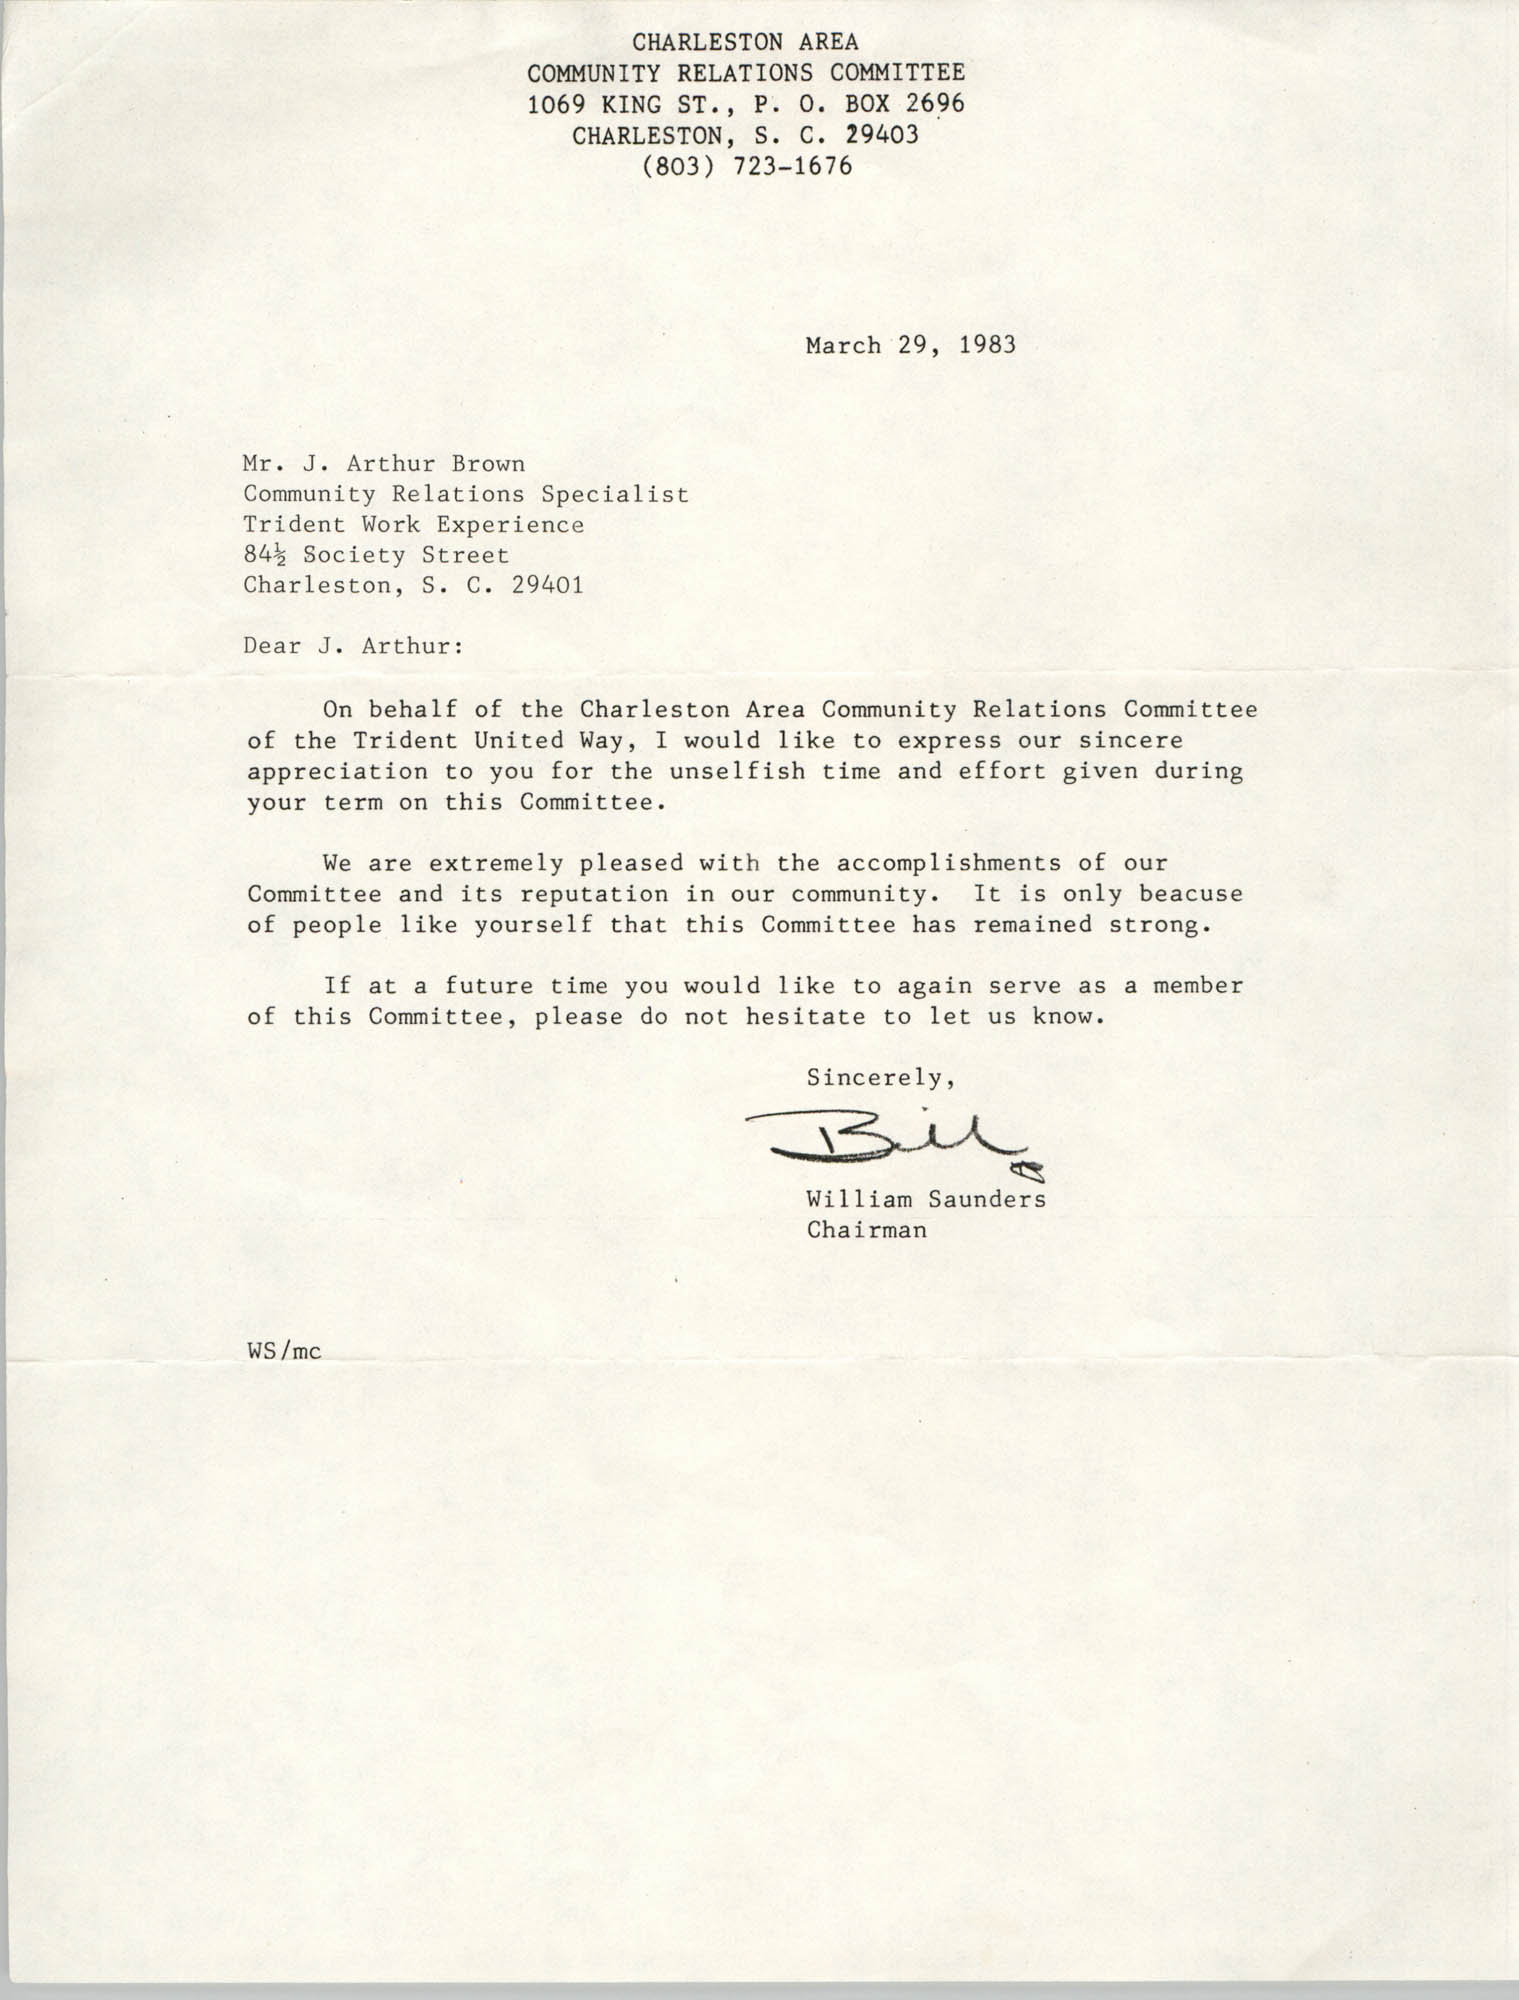 Letter from William Saunders to J. Arthur Brown, March 29, 1983